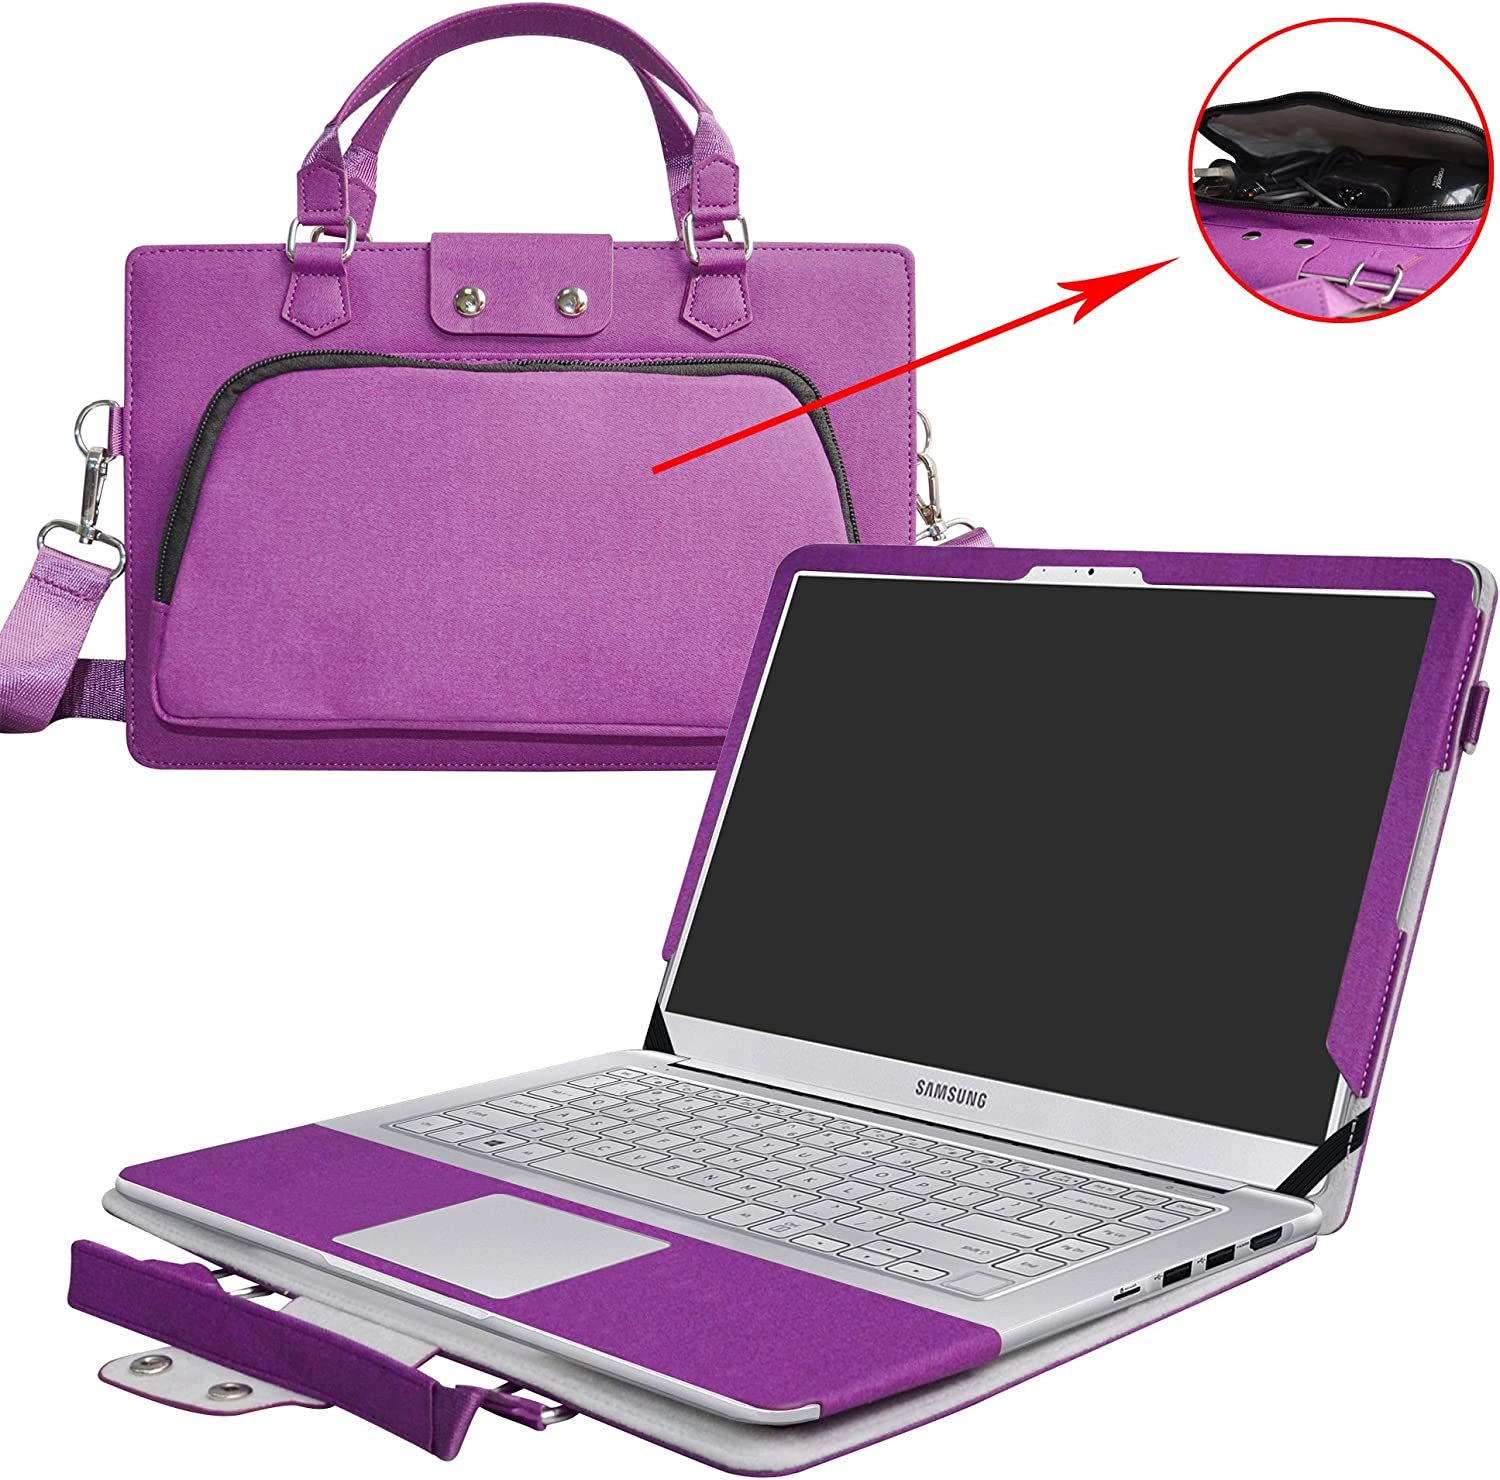 """Notebook 9 Pro 15 Case,2 in 1 Accurately Designed Protective PU Cover + Portable Carrying Bag for 15"""" Samsung Notebook 9 Pro 15 NP940X5M-X01US NP940X5M-X02US Laptop(Not fit Notebook 9 Series),Purple"""